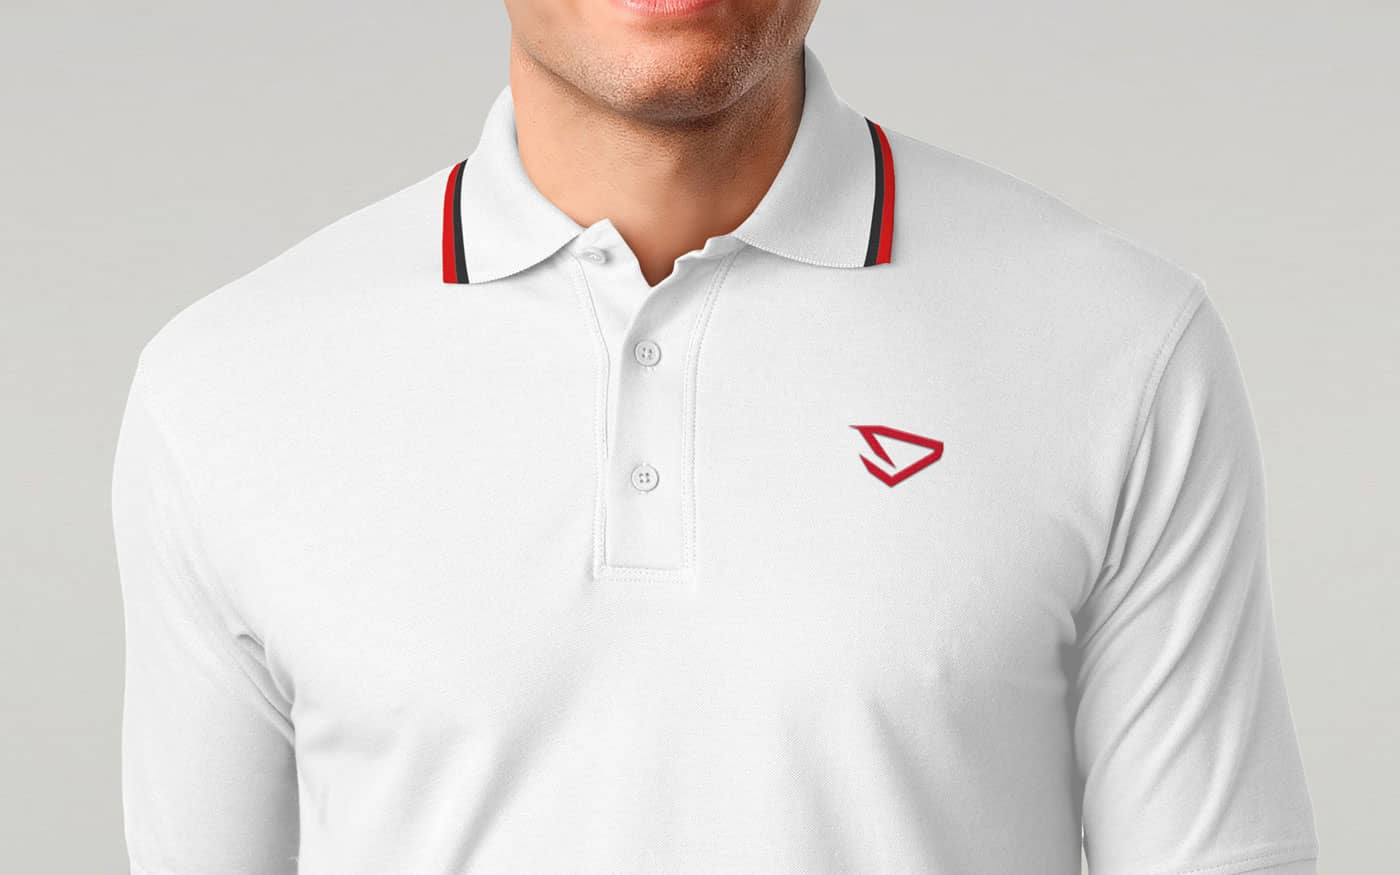 DLION polo mockup